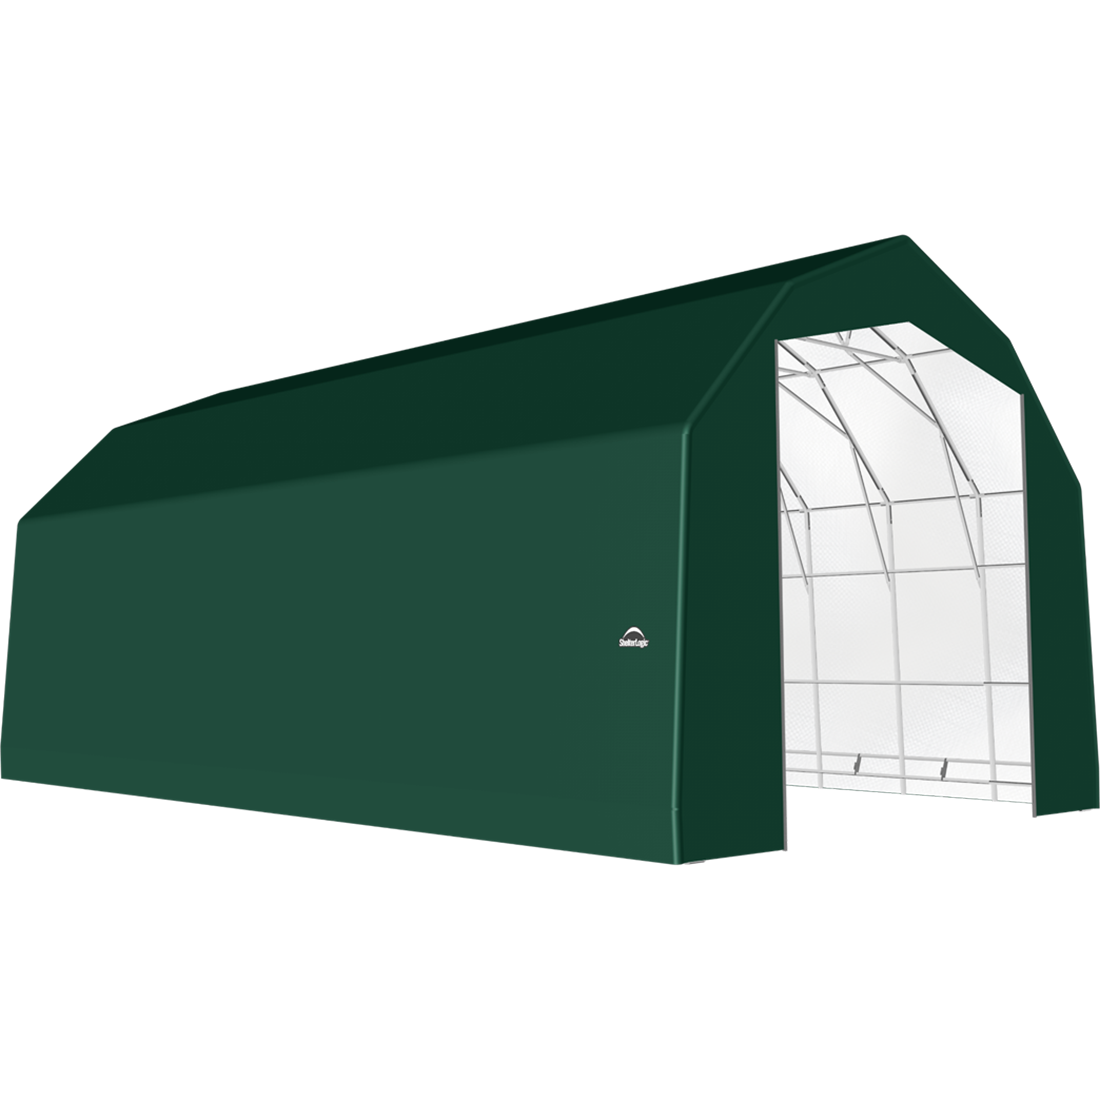 SP Barn 25X44X20 Green 14 oz PE Shelter